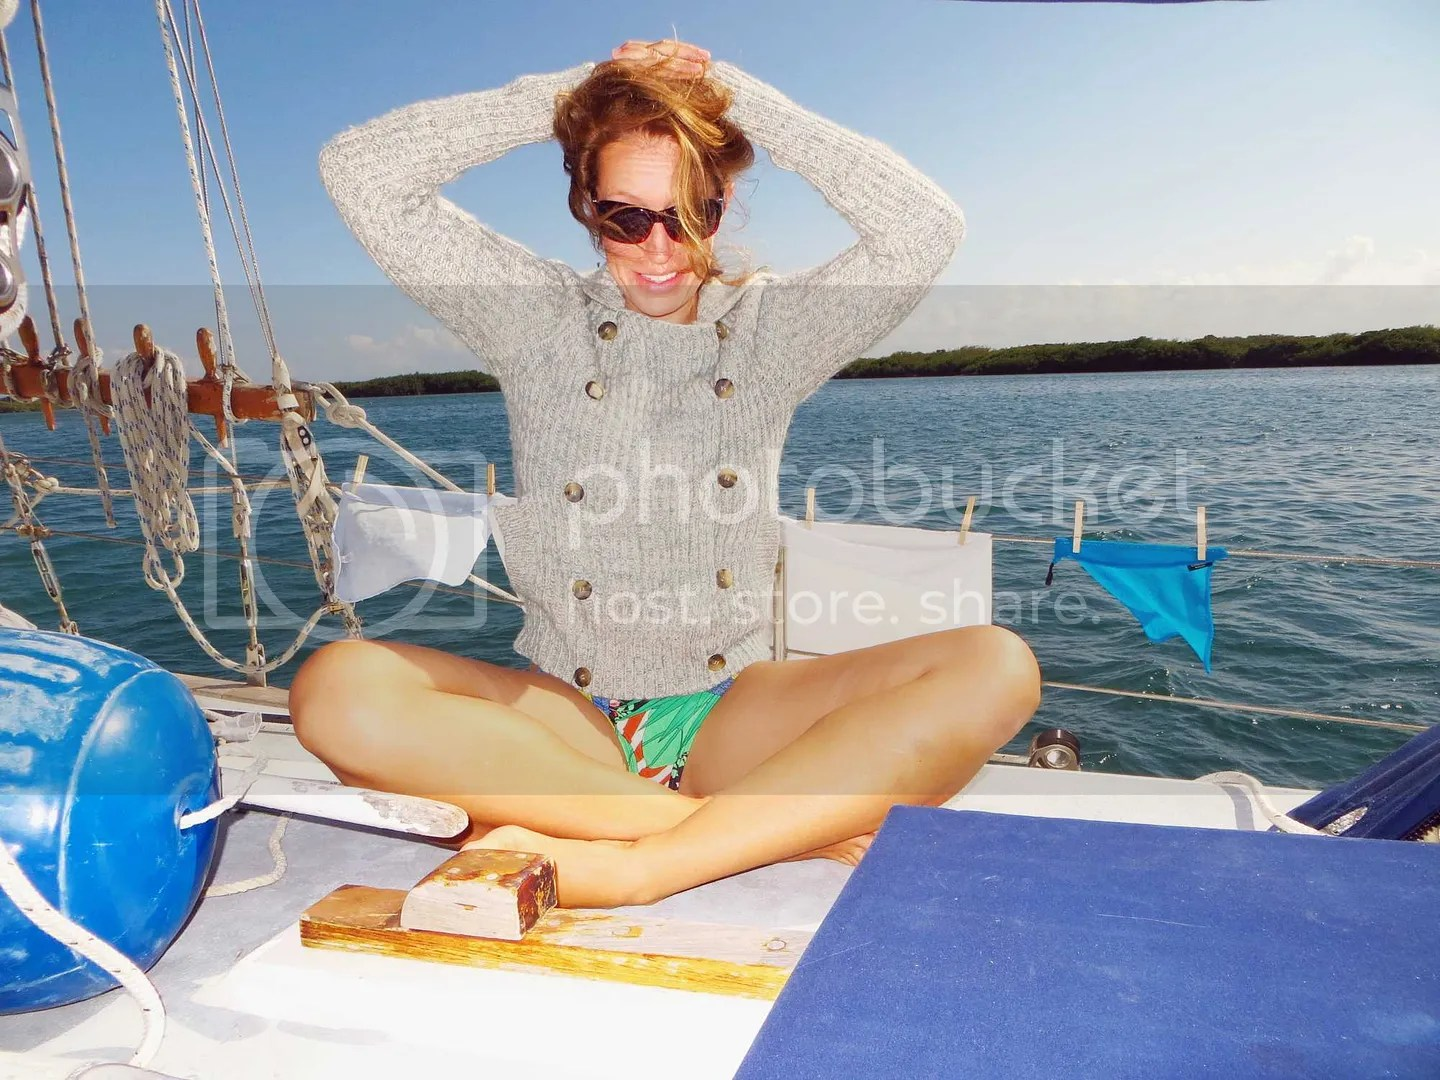 Dani wearing a sweater and bathing suit in Isla Mujeres